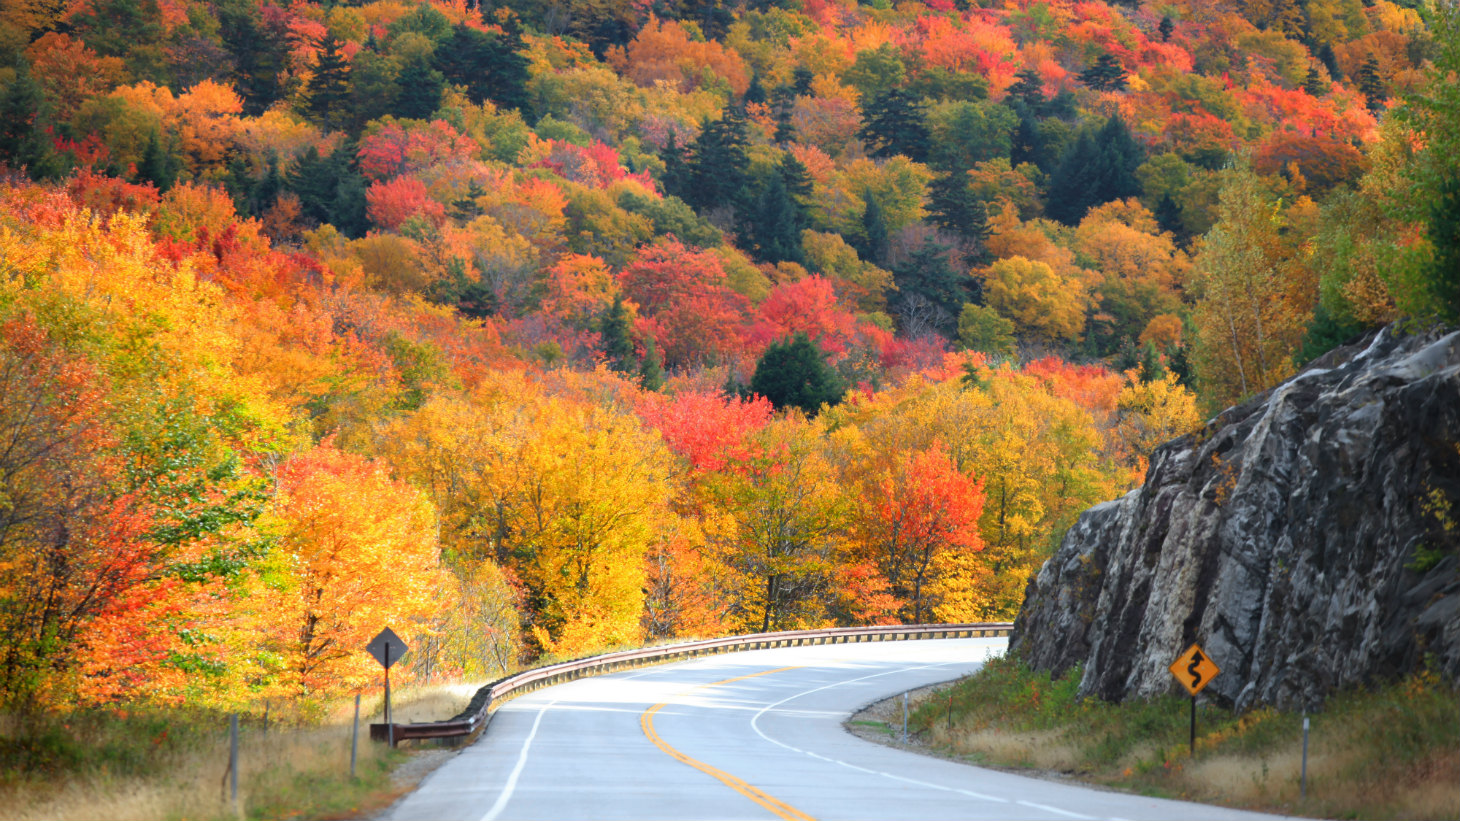 Scenic Drive through Fall Foliage in Hills